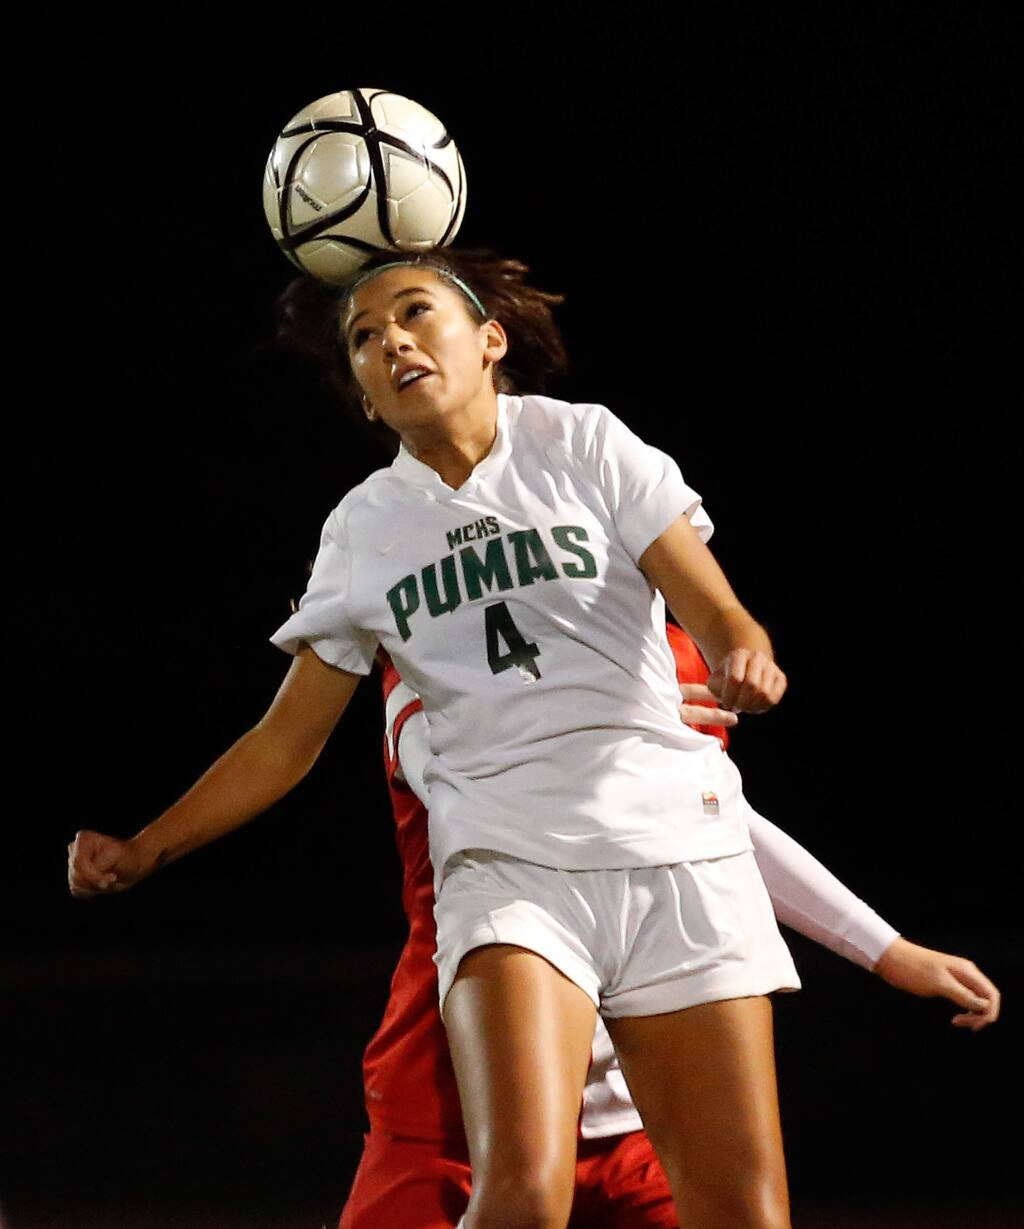 Maria Carrillo's Maddy Gonzalez (4) gets up for a header during the first half of the NCS Division 1 championship girls soccer match between Maria Carrillo and Montgomery high schools in Santa Rosa, California on Saturday, November 14, 2015. (Alvin Jornada / The Press Democrat)